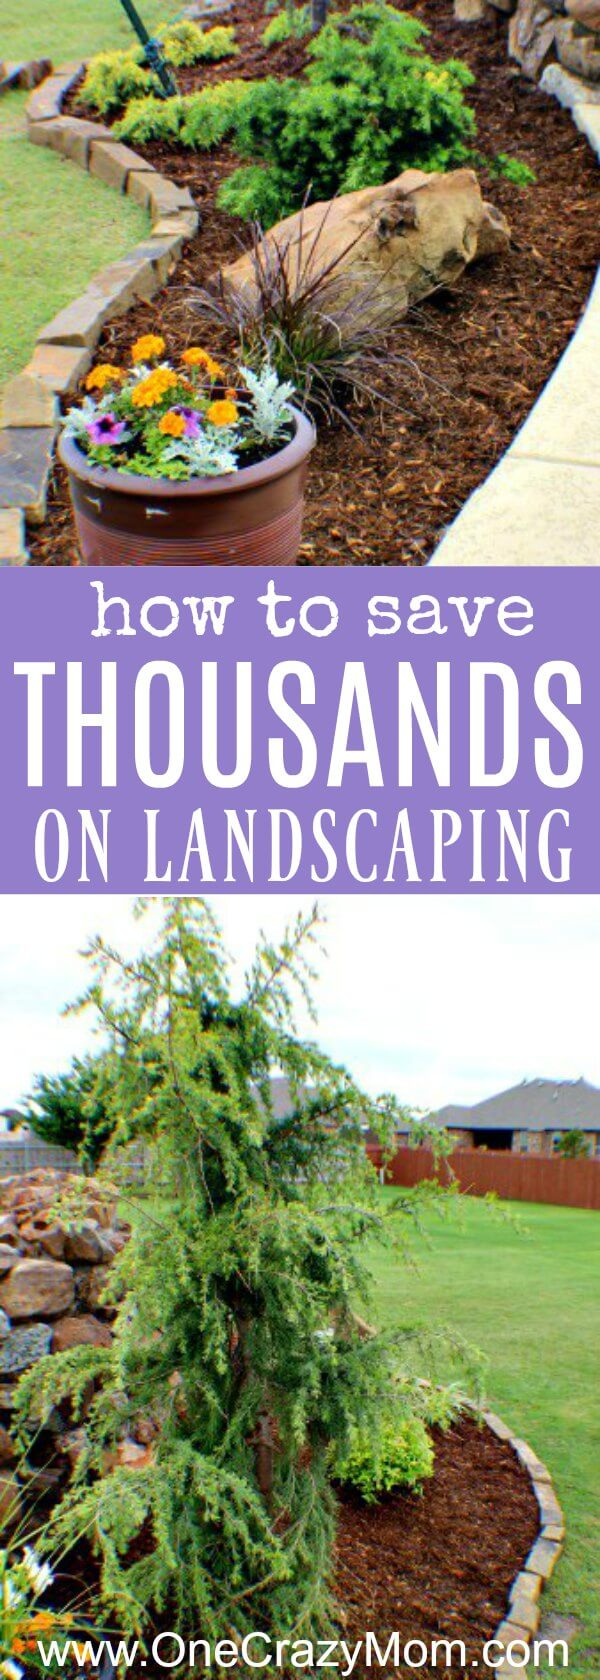 Use these money saving landscaping tips to save big on landscaping. 7 Money saving landscaping tips you will love. Learn how to save money on landscaping. Save thousands of dollars with these money saving tips for landscaping your yard!